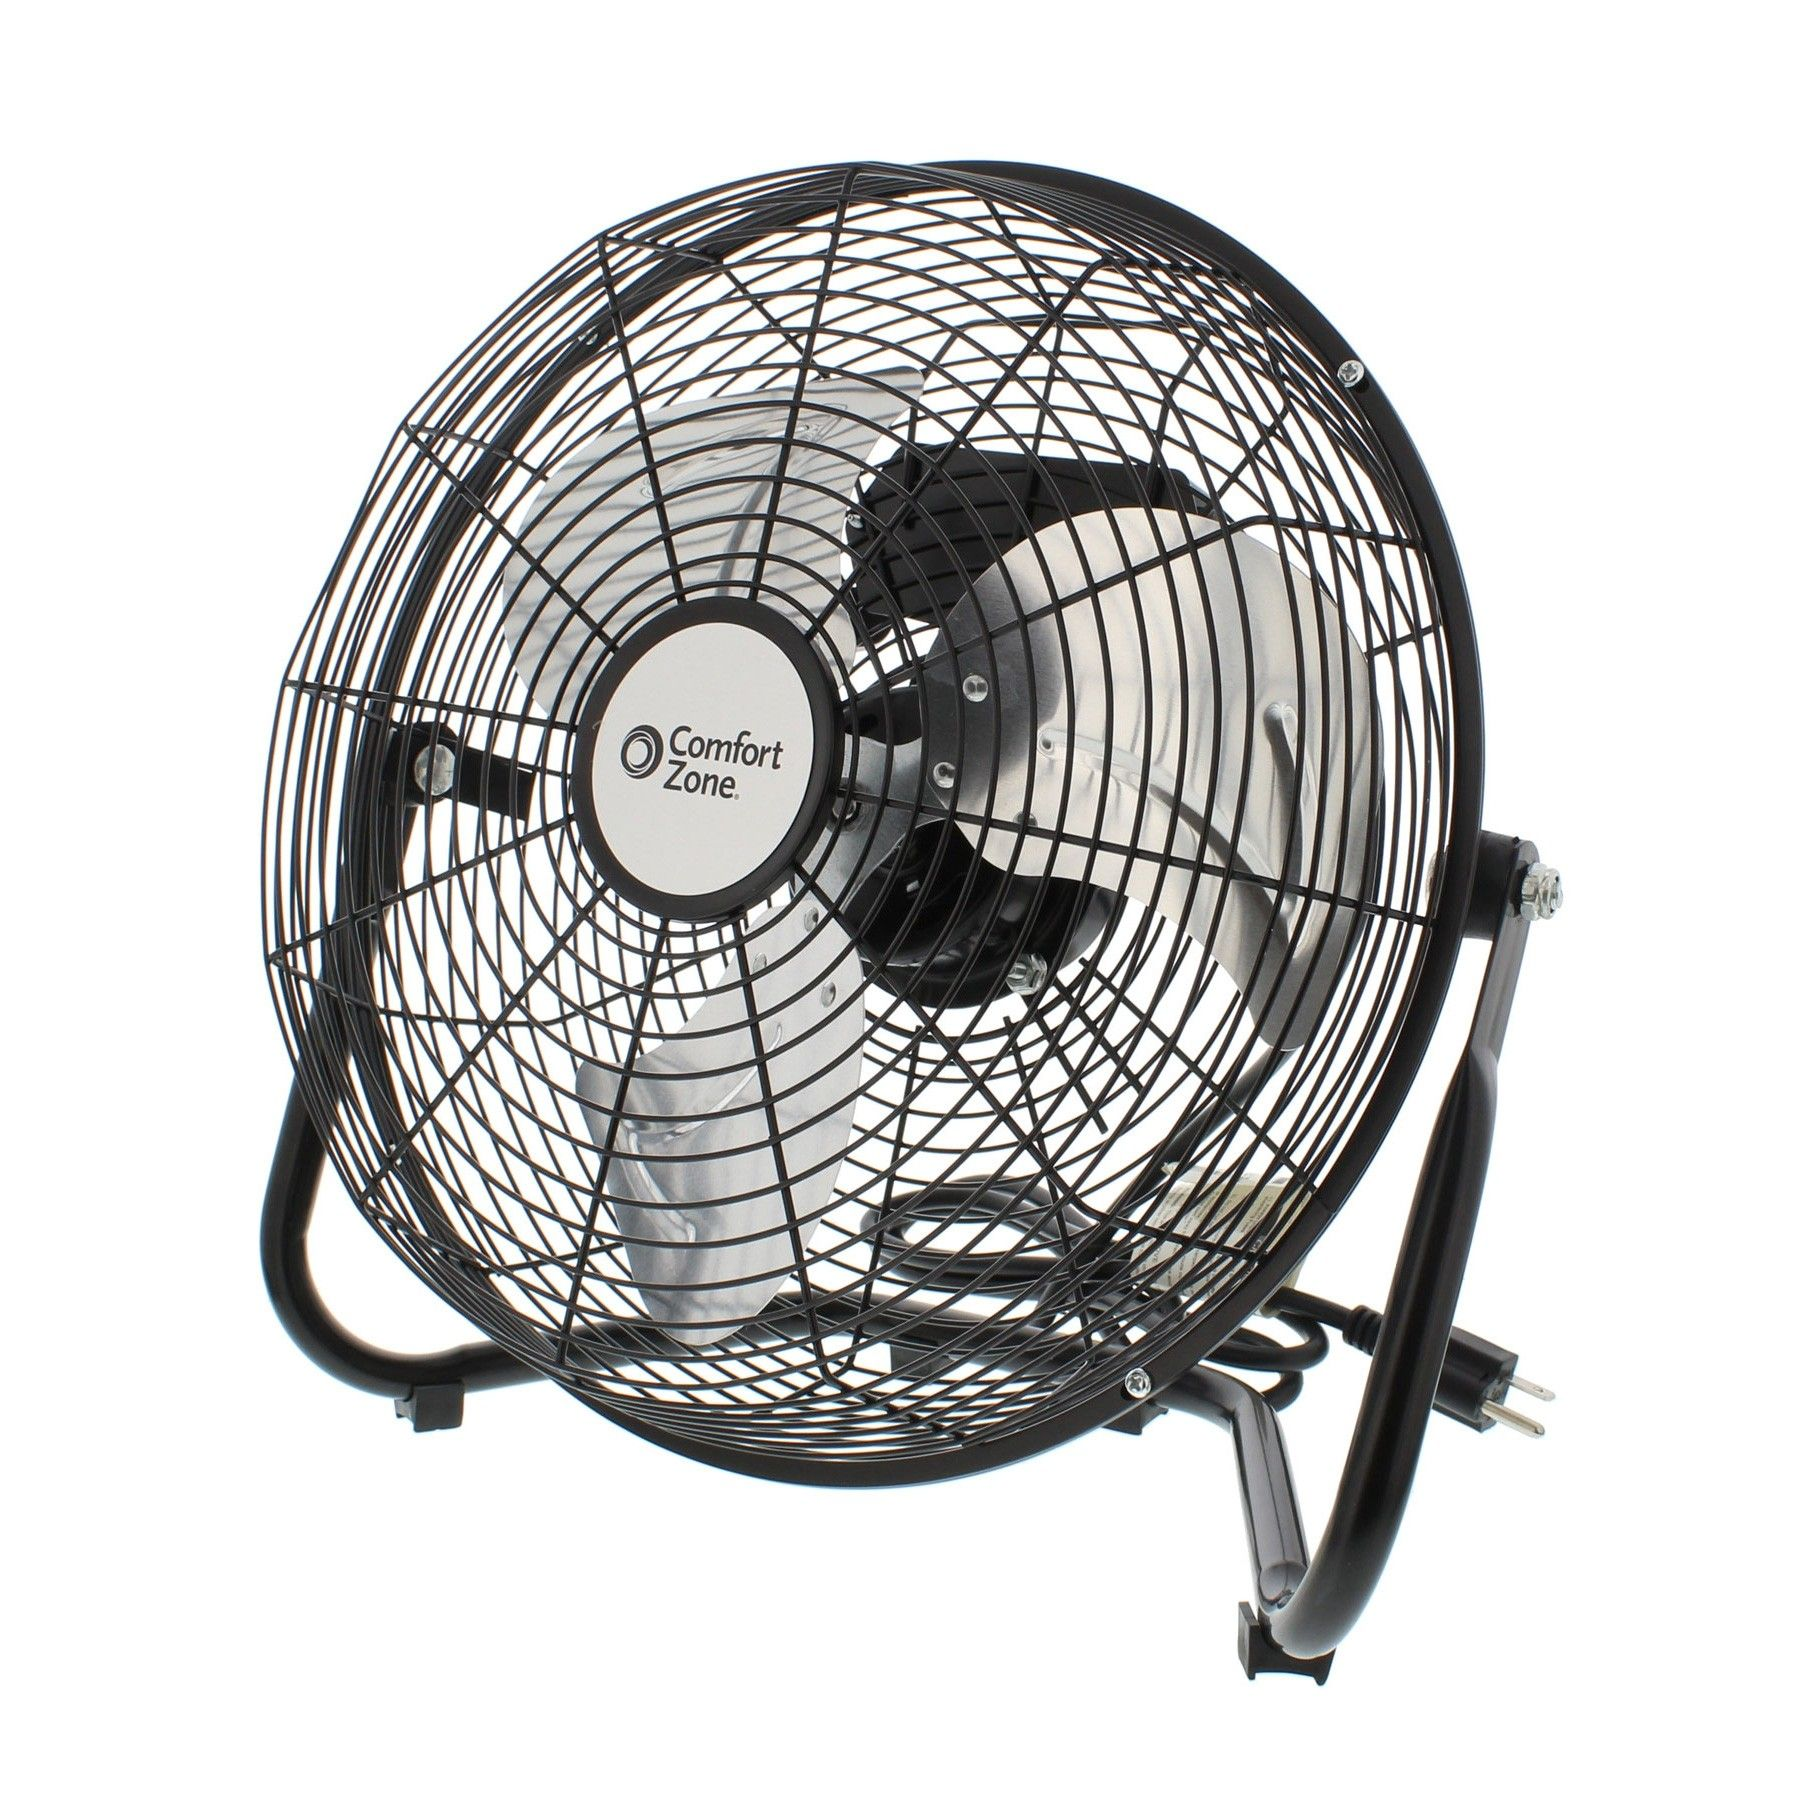 Comfort Zone Czhv12b High Velocity 12 Inch Floor Or Cradle Fan 360 Degree Adjustable Tilt Discontinued No Longer Available High Velocity Fan Fan Comfort Zone